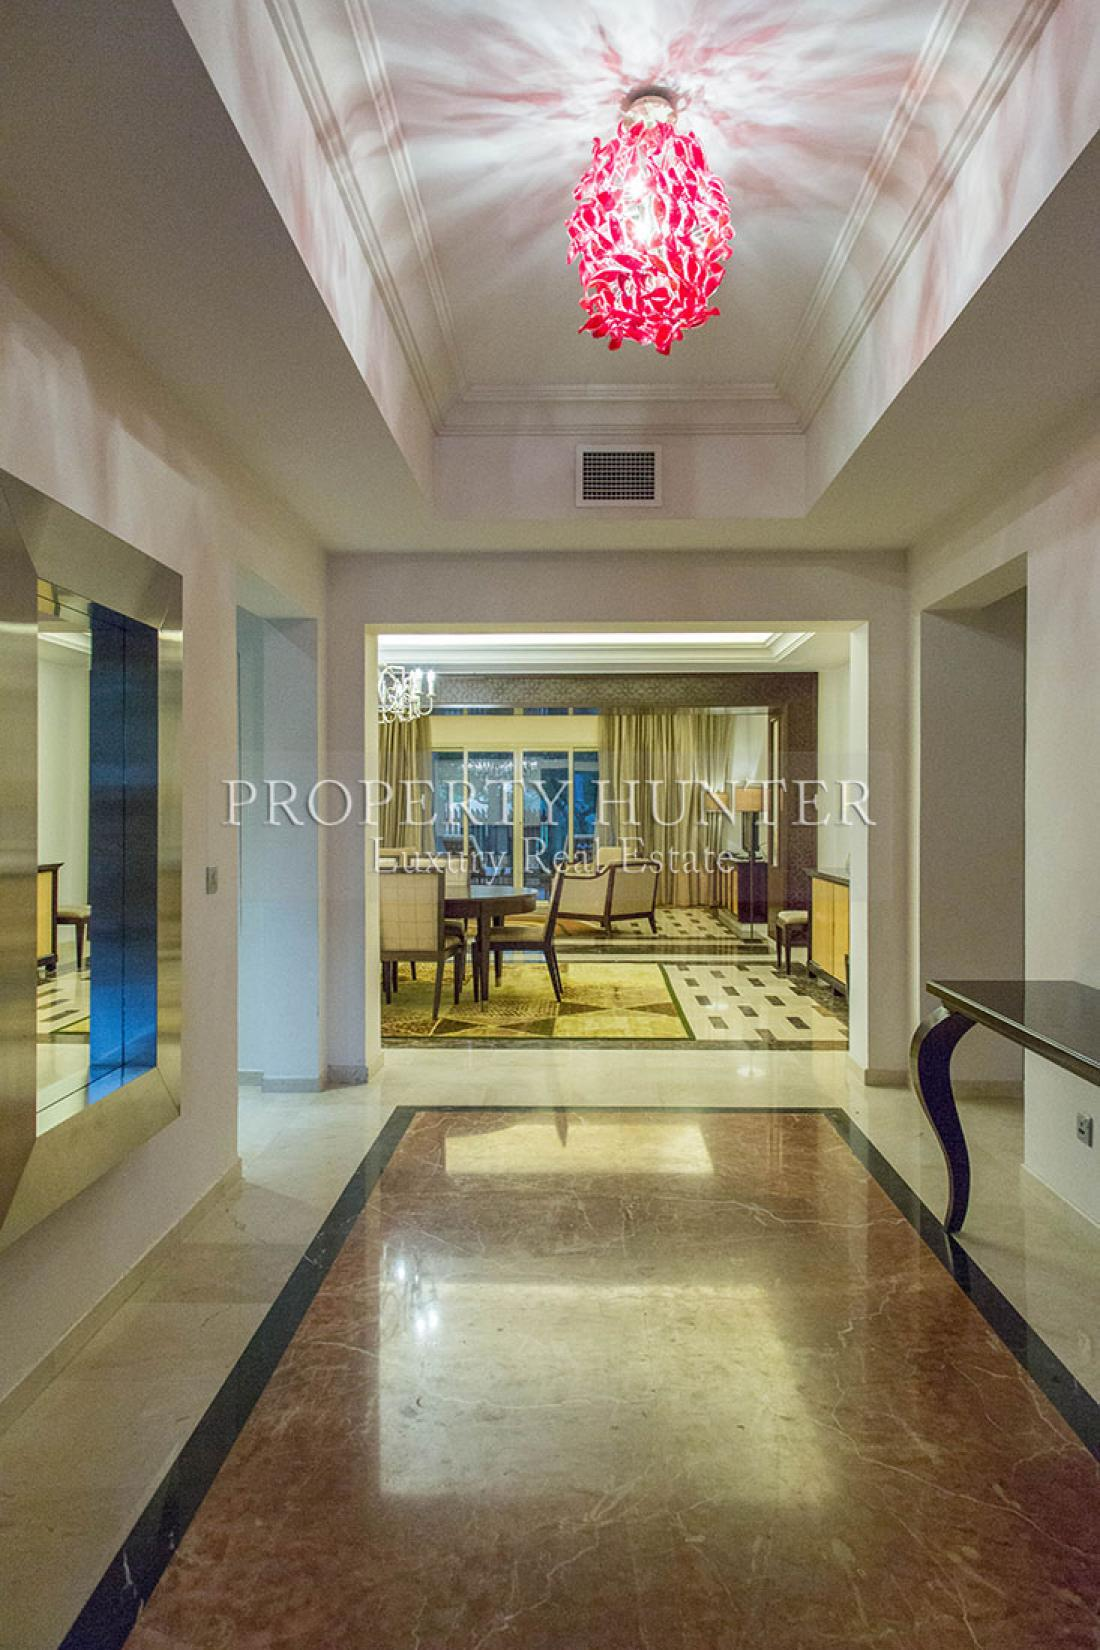 2 Bedroom Villa in compound in Doha - Diplomatic Area - West Bay